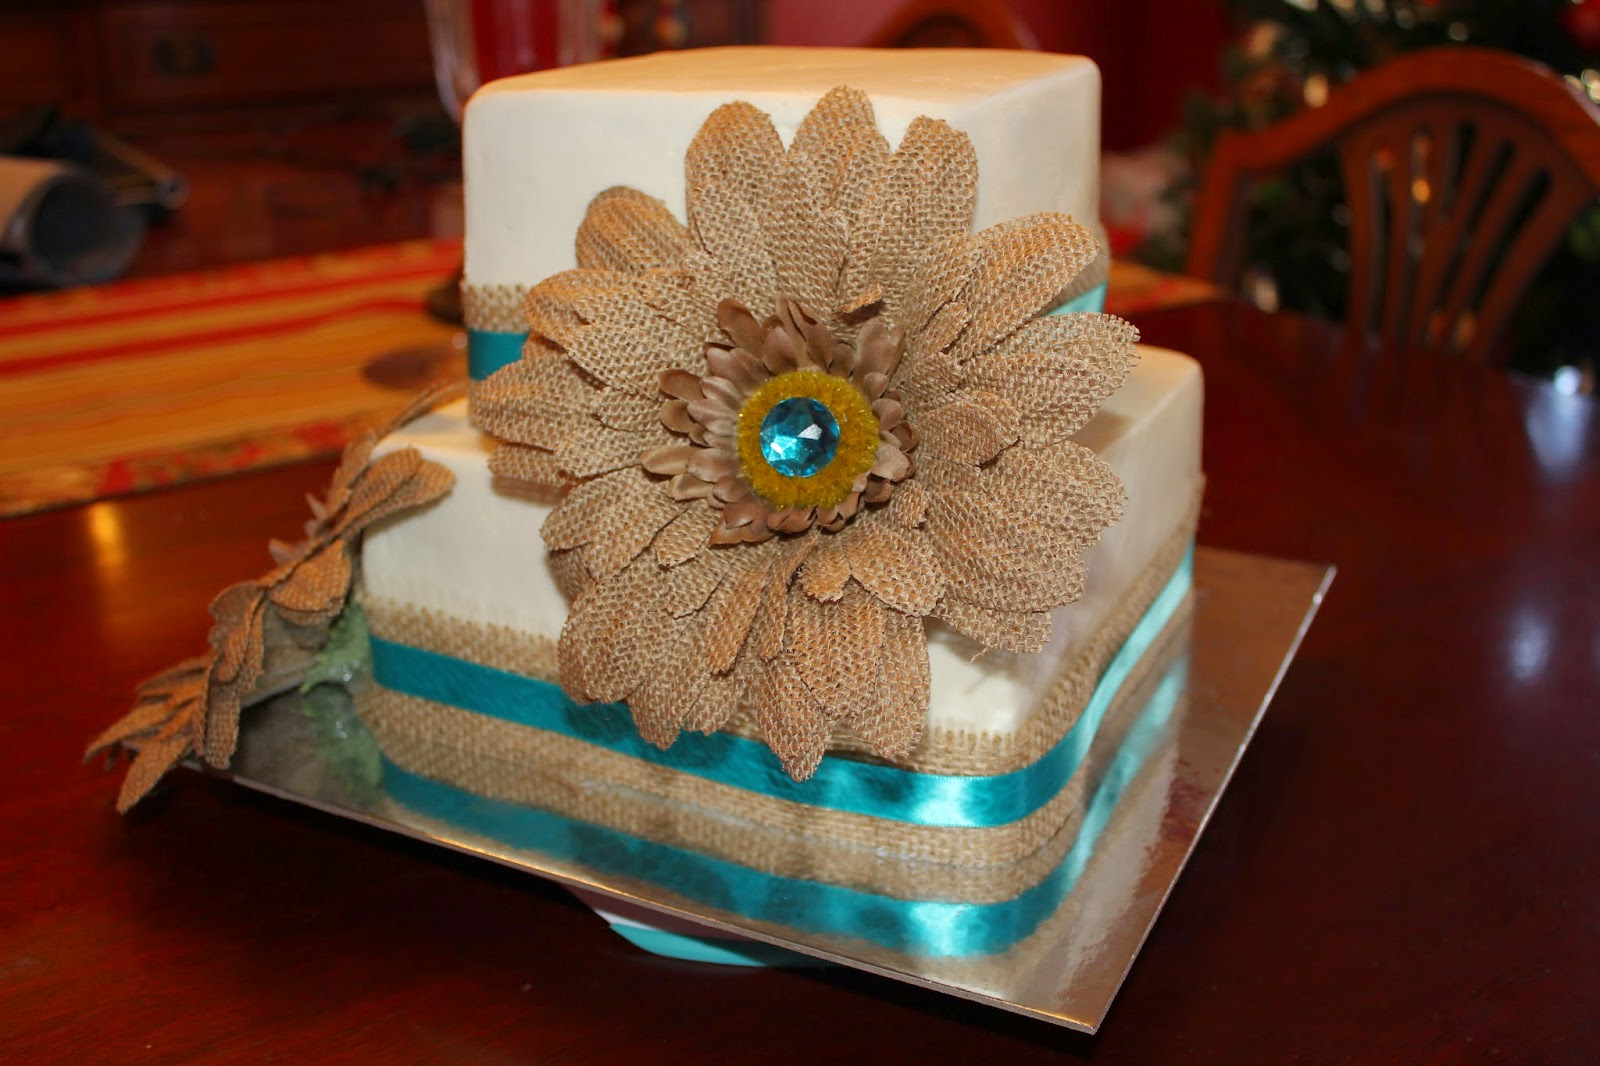 Make Her Friend A Small Wedding Cake For Their In Oklahoma She Wanted It To Be Square And Gave Me The Flowers This Was What I Came Up With